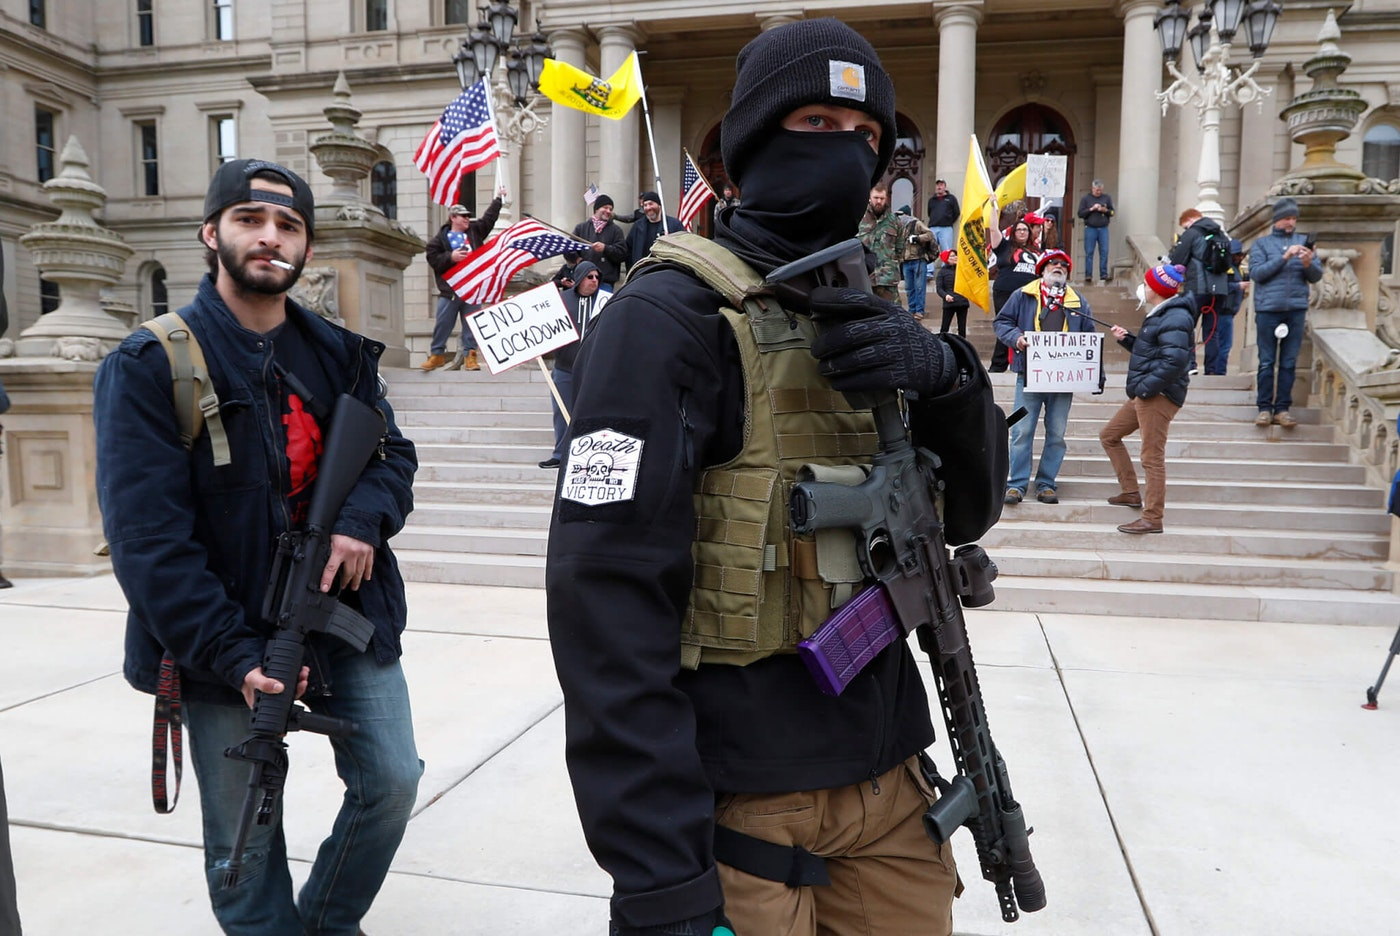 In this April 15, 2020 photo, protesters carry guns outside the Capitol Building in Lansing, Mich. Attorney General Dana Nessel said Friday, May 8, 2020, that a commission overseeing the state Capitol can legally ban guns from the building, contradicting panel leaders' contention that only the Legislature can do so. (AP Photo/Paul Sancya)